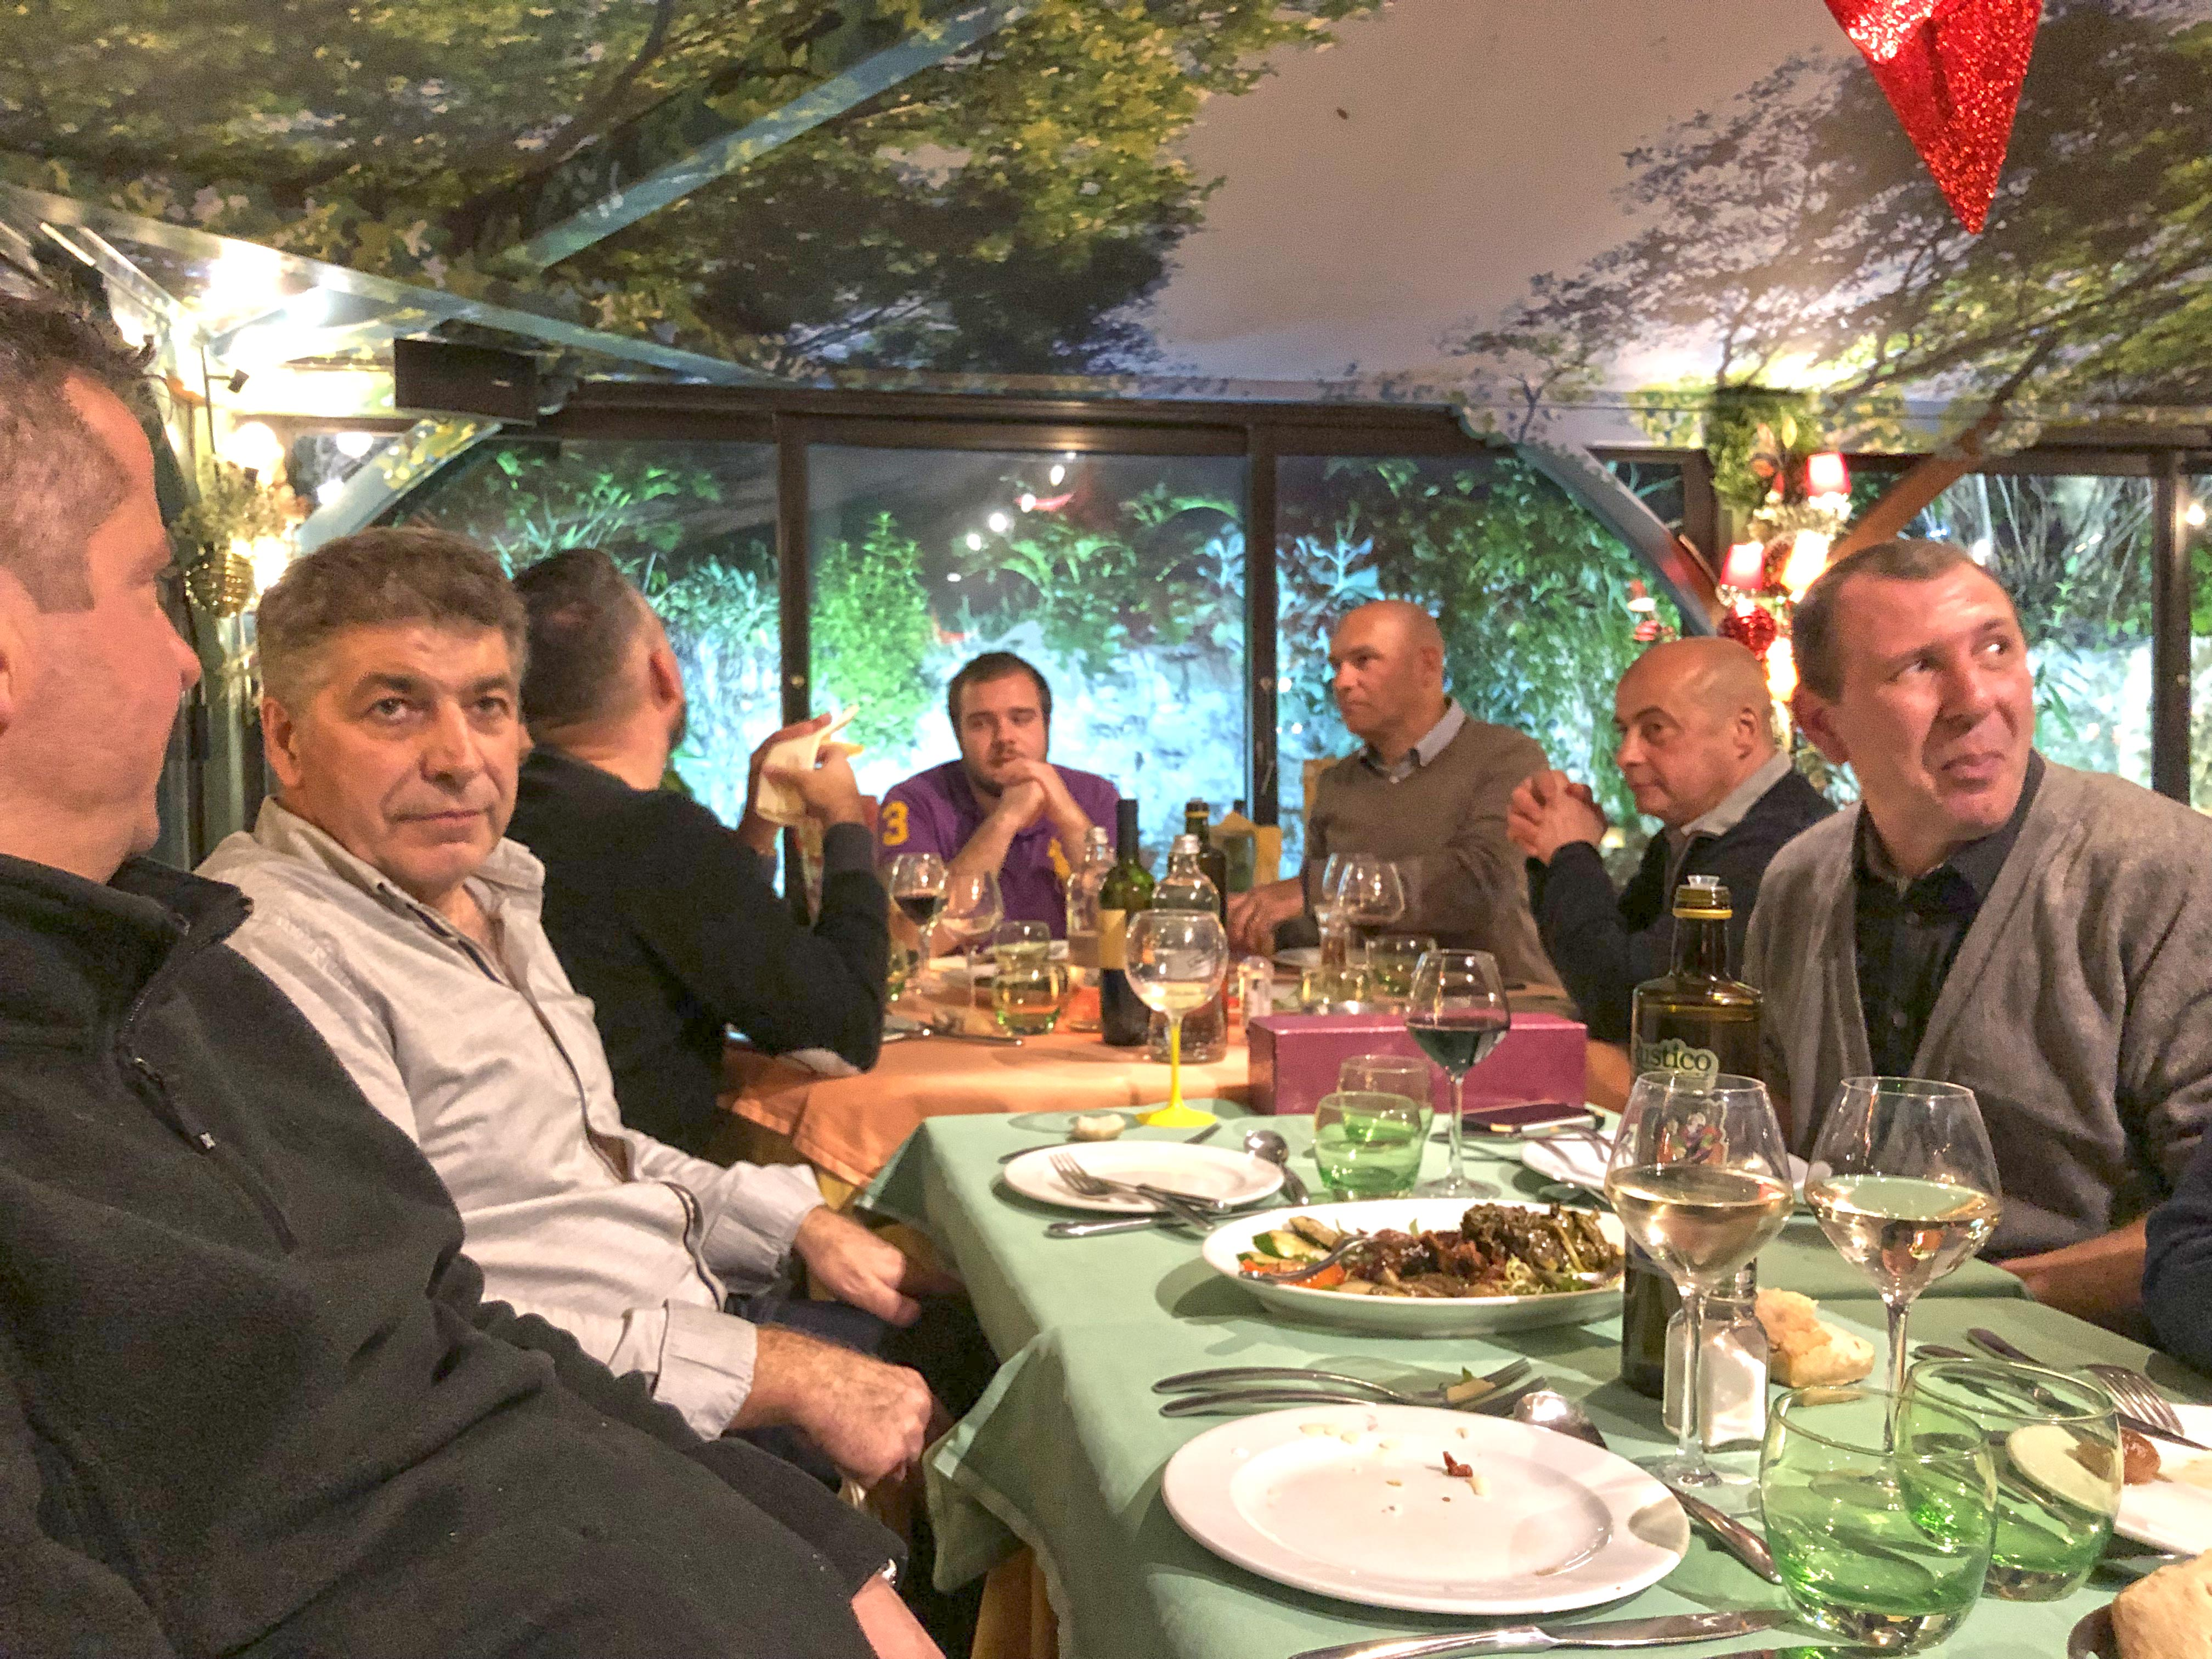 Repas-de-fin-d'année-aucop-team-interne-nice-marseille-noel-audiovisuel-evenement-evenementiel-communication-equipe-event